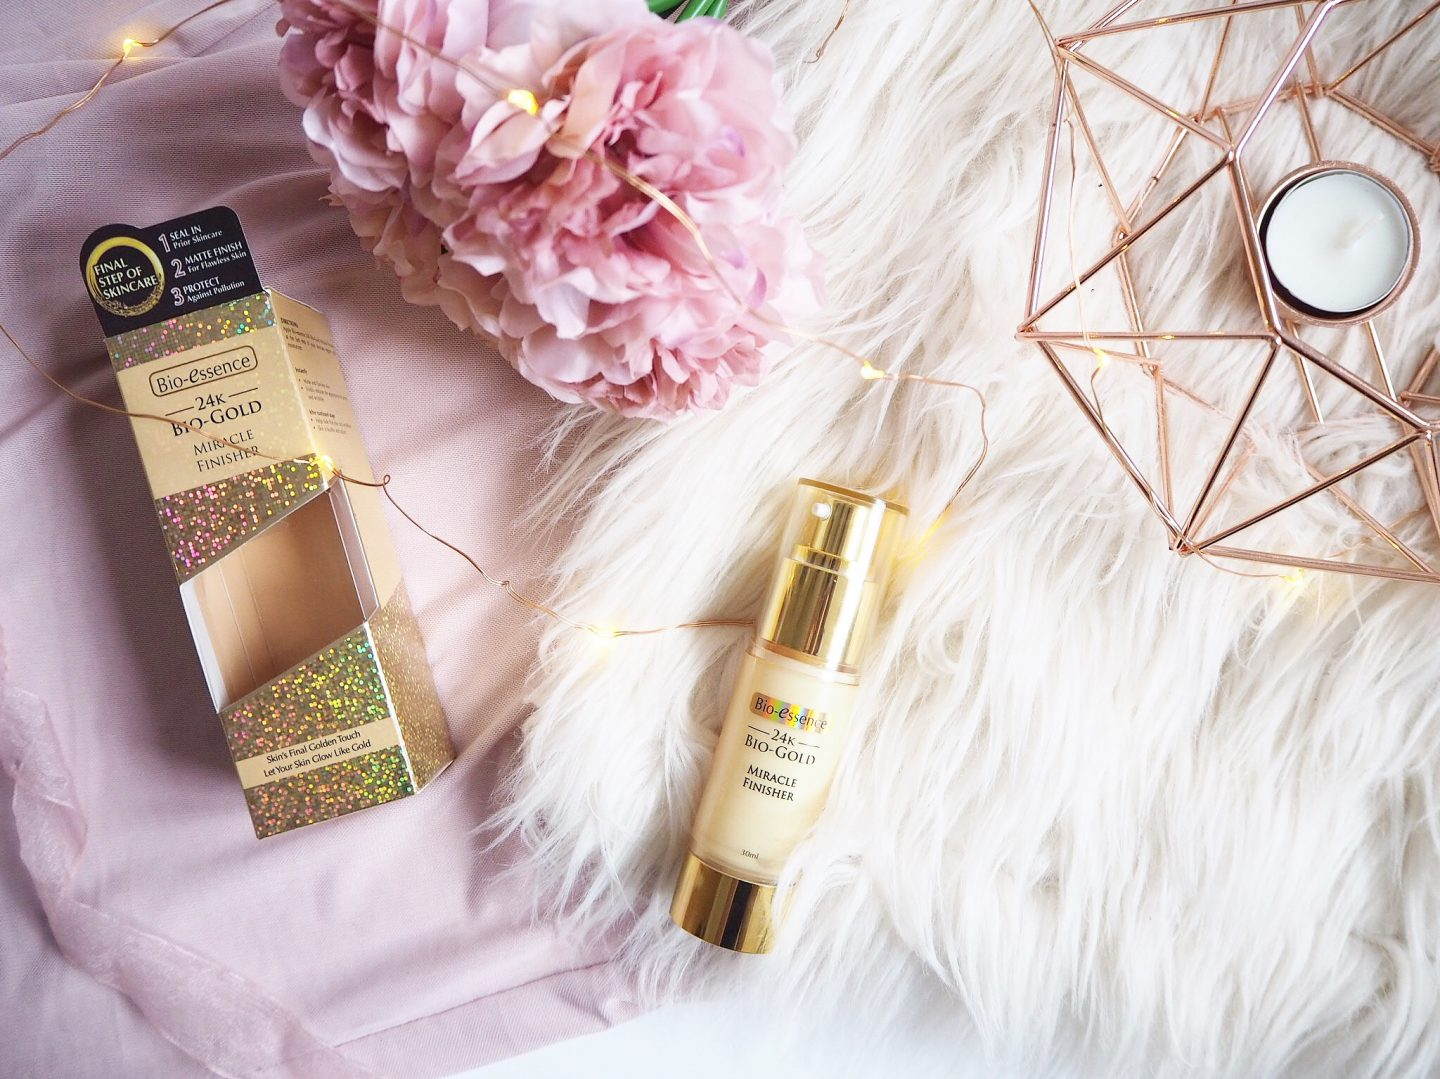 Bio-Essence 24k Bio-Gold Miracle Finisher – Is It A Miracle?